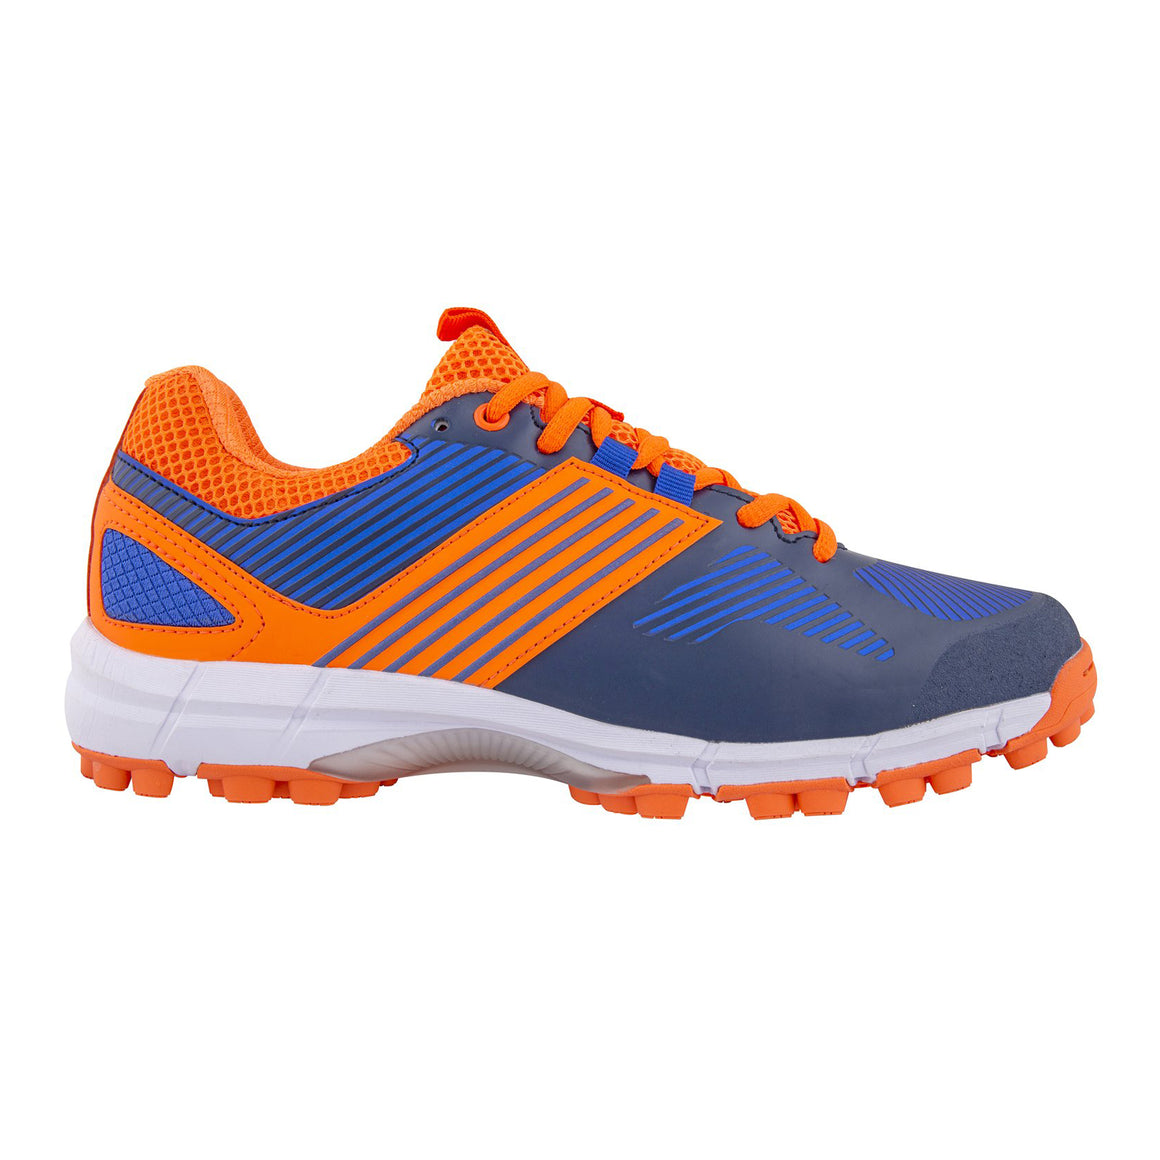 Flash Astro for Men in Navy & Orange